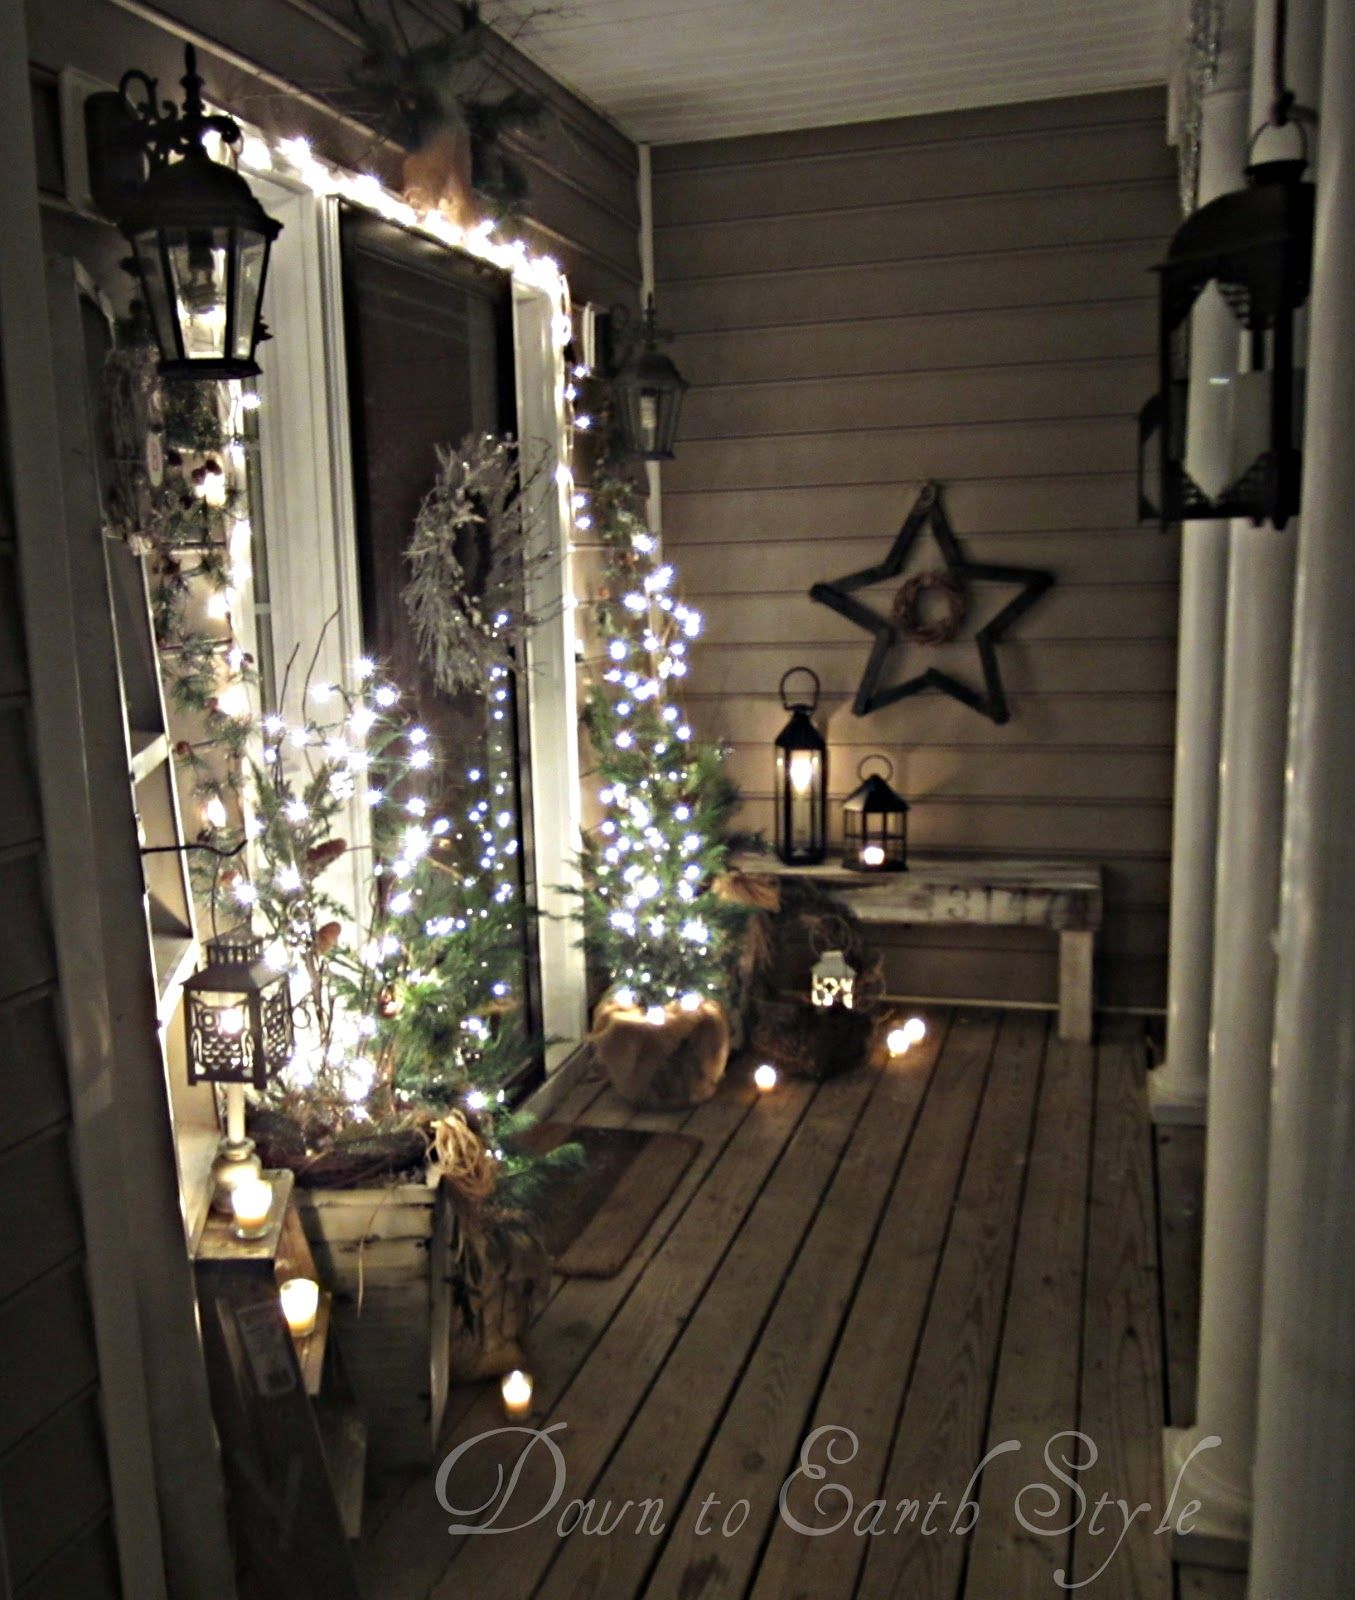 Down to Earth Style: Christmas Porch 2012